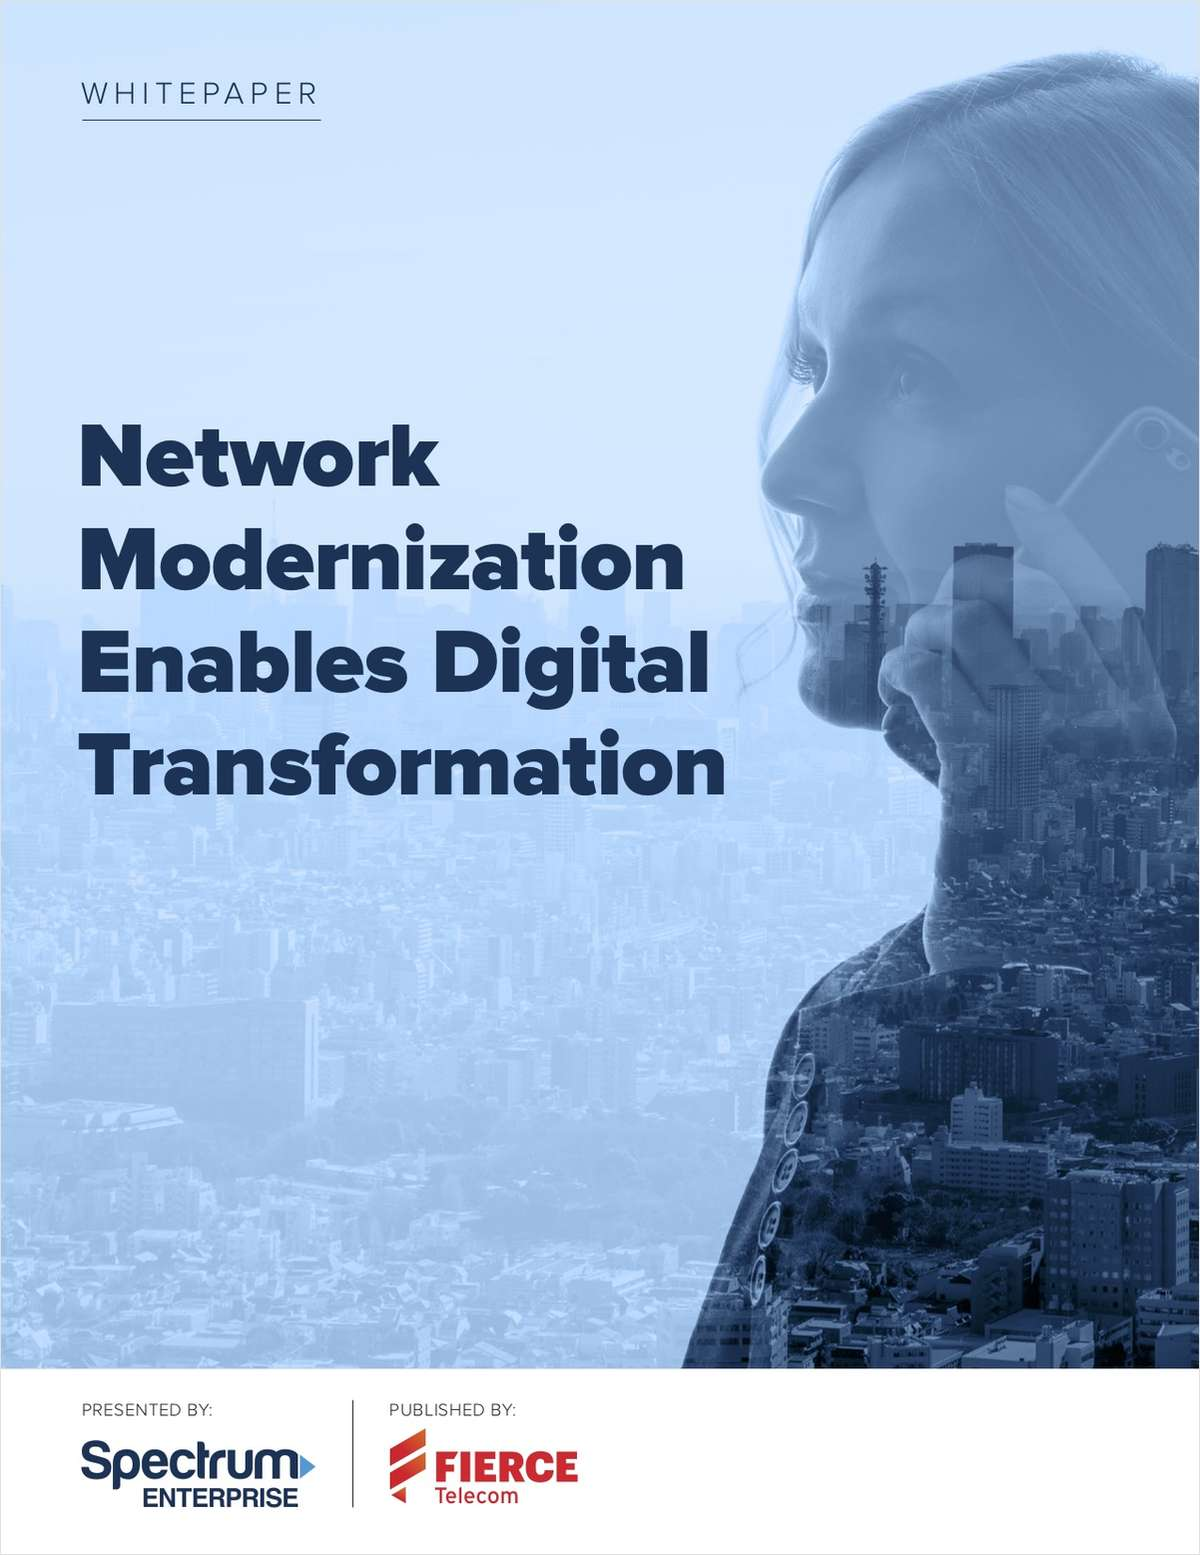 Network Modernization Enables Digital Transformation